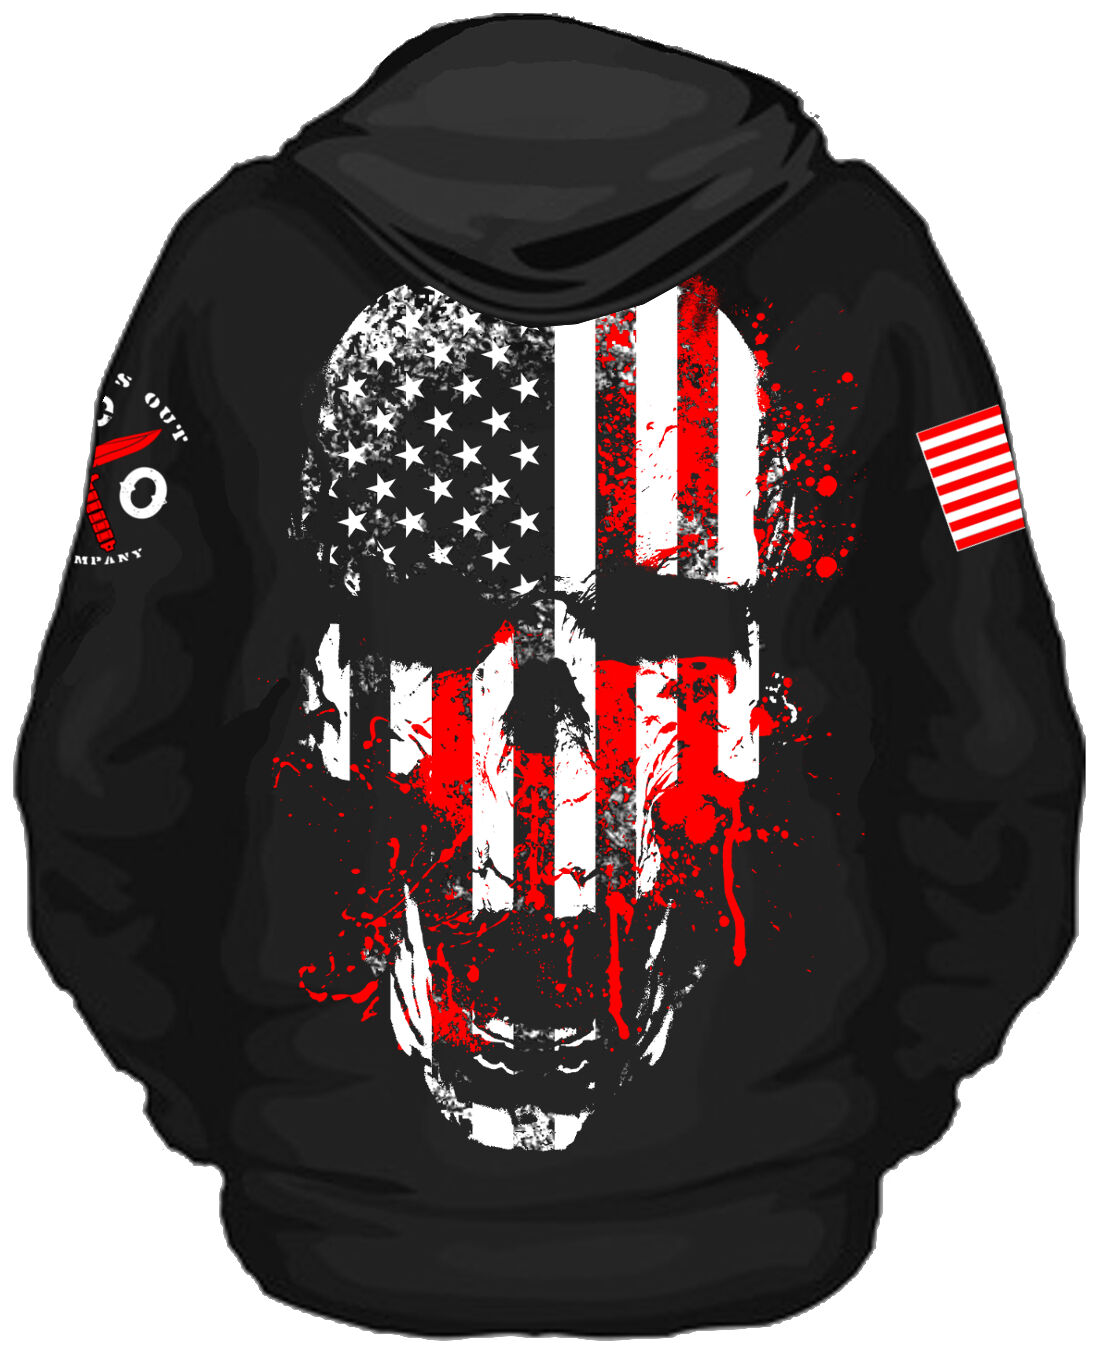 Liberty or Death Zip Up Hooded Sweatshirt I Knives Out I Veteran I Military